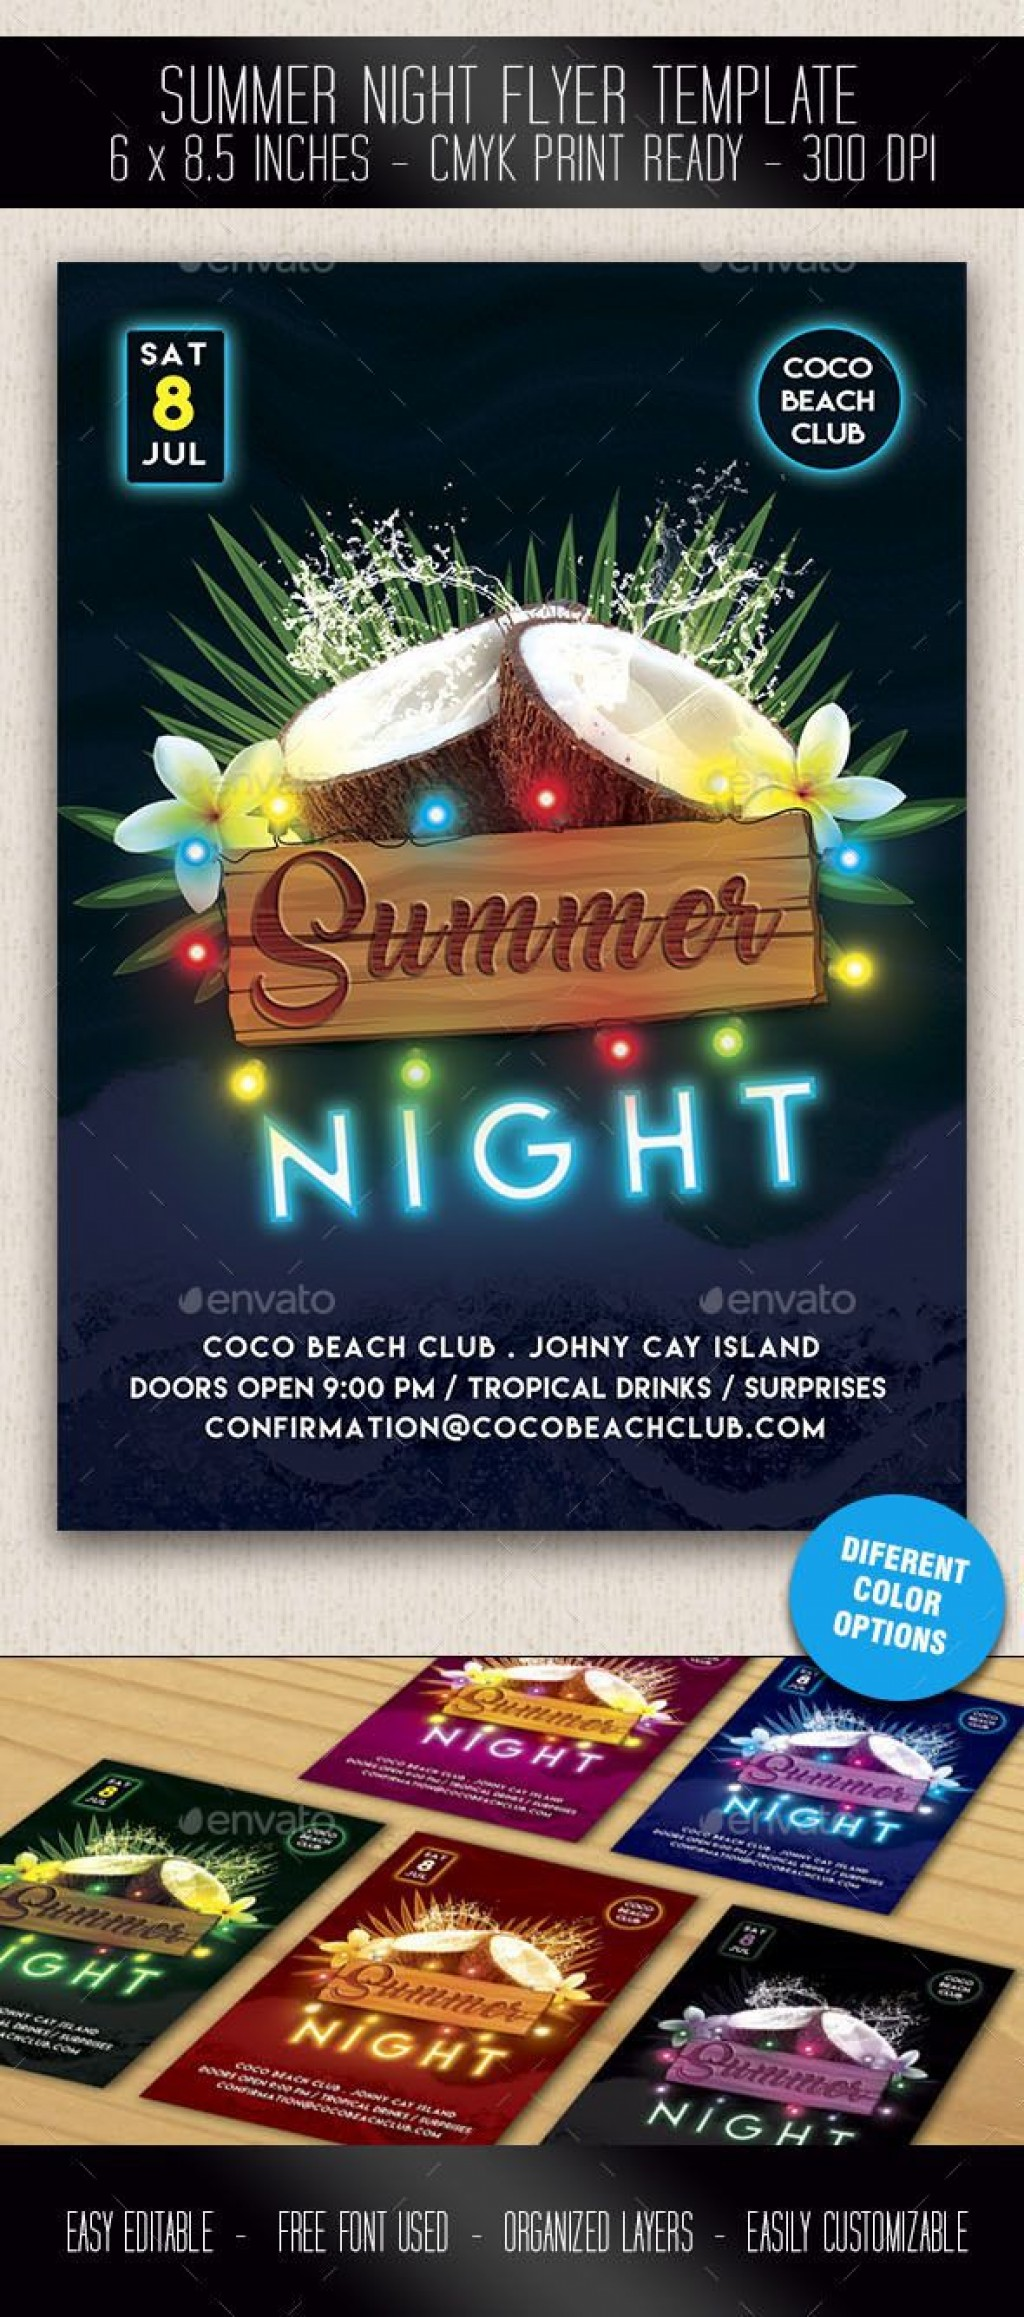 000 Shocking Free Party Flyer Template For Mac Highest Quality Large